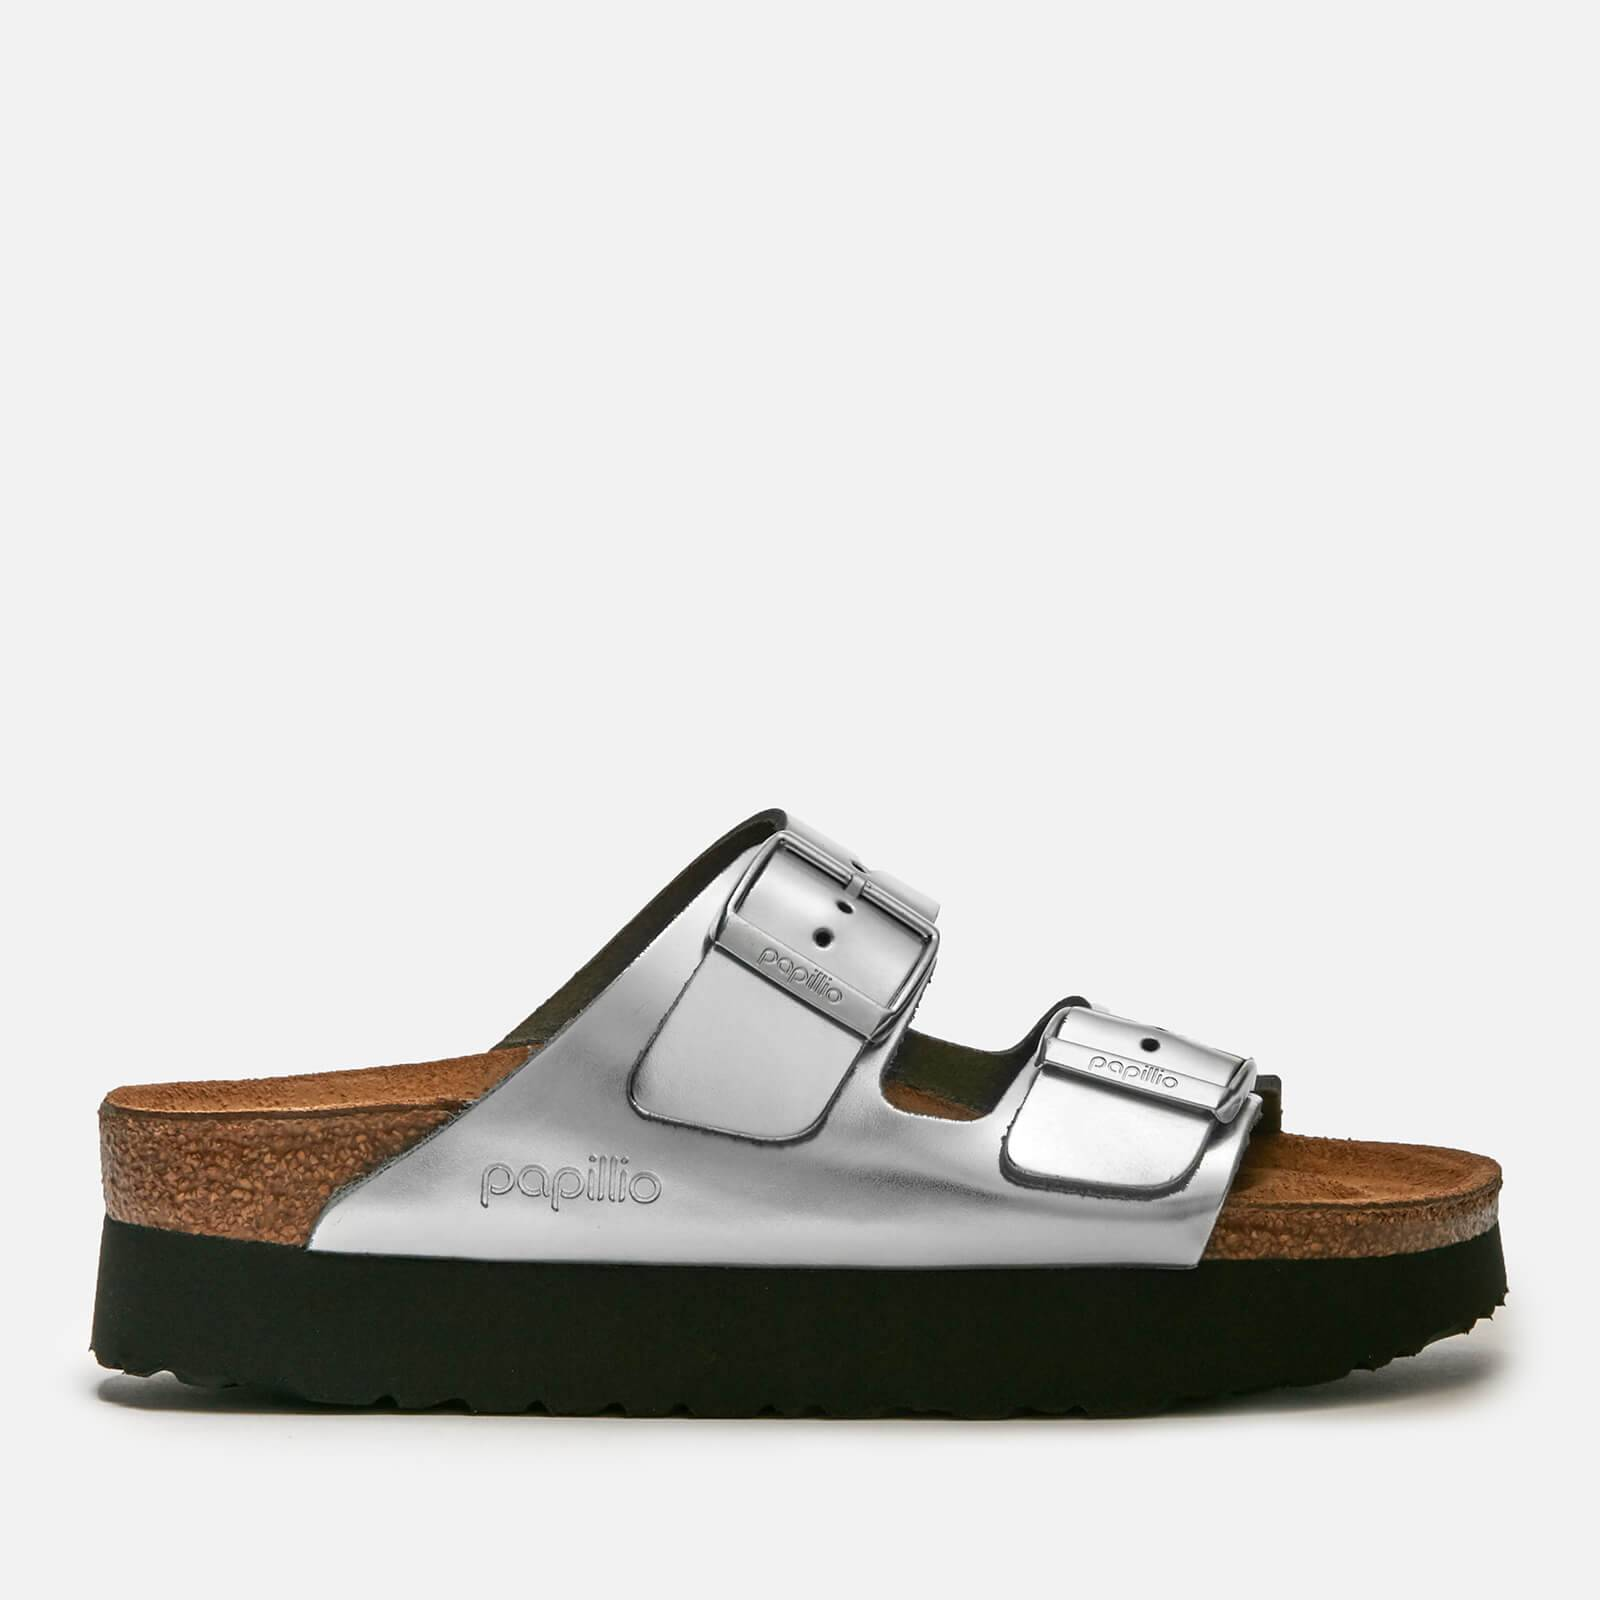 Birkenstock Papillio Women's Arizona Metallic Platform Double Strap Sandals - Silver - UK 7.5 - Silver